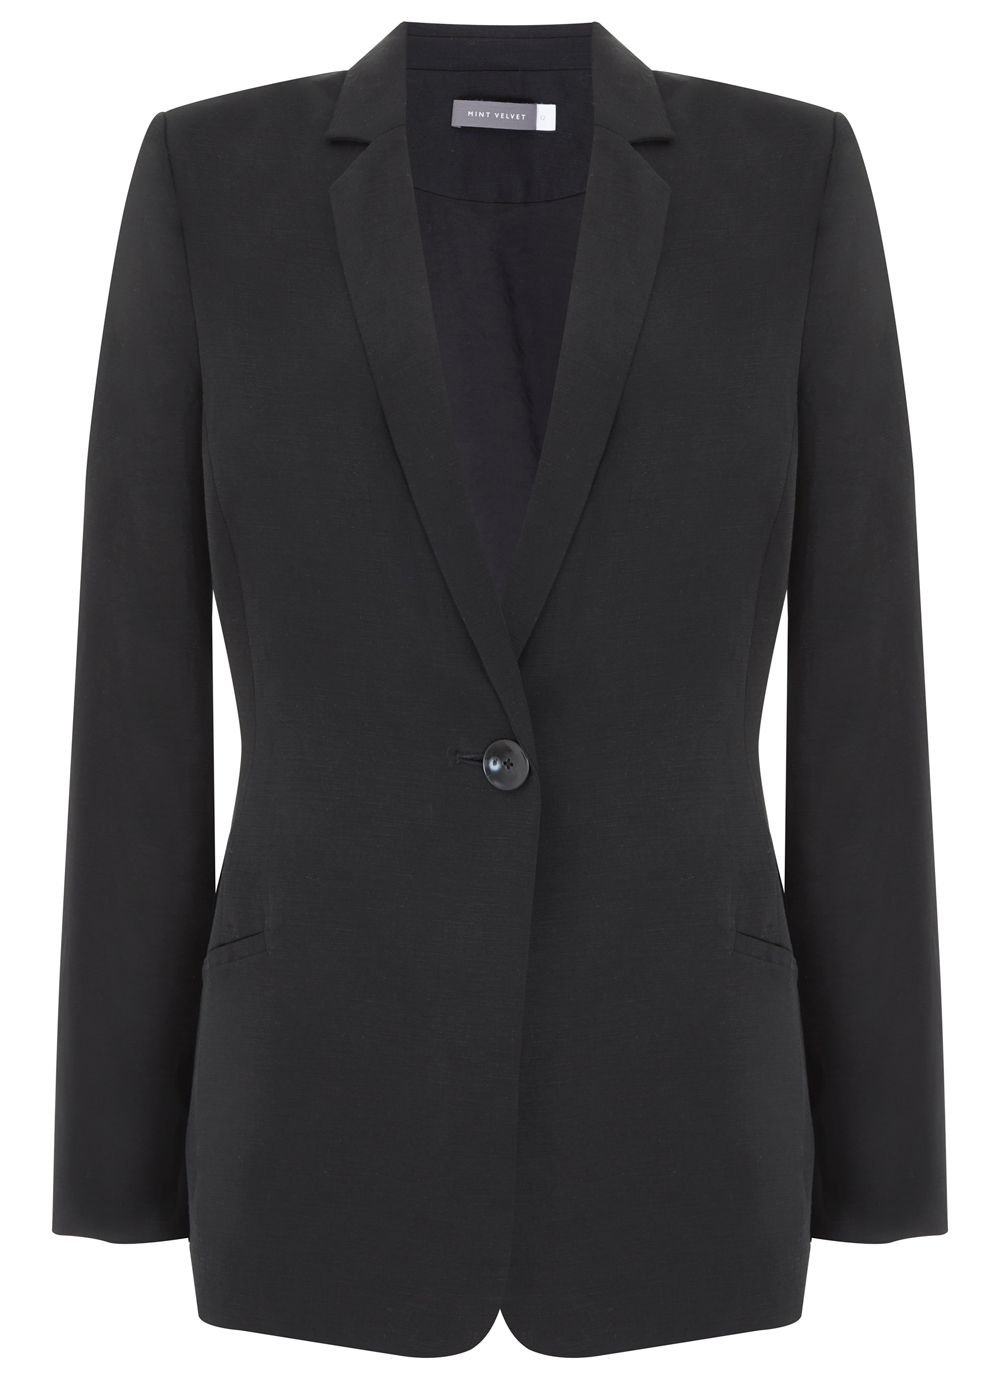 Mint Velvet Black Boyfriend Blazer, Black